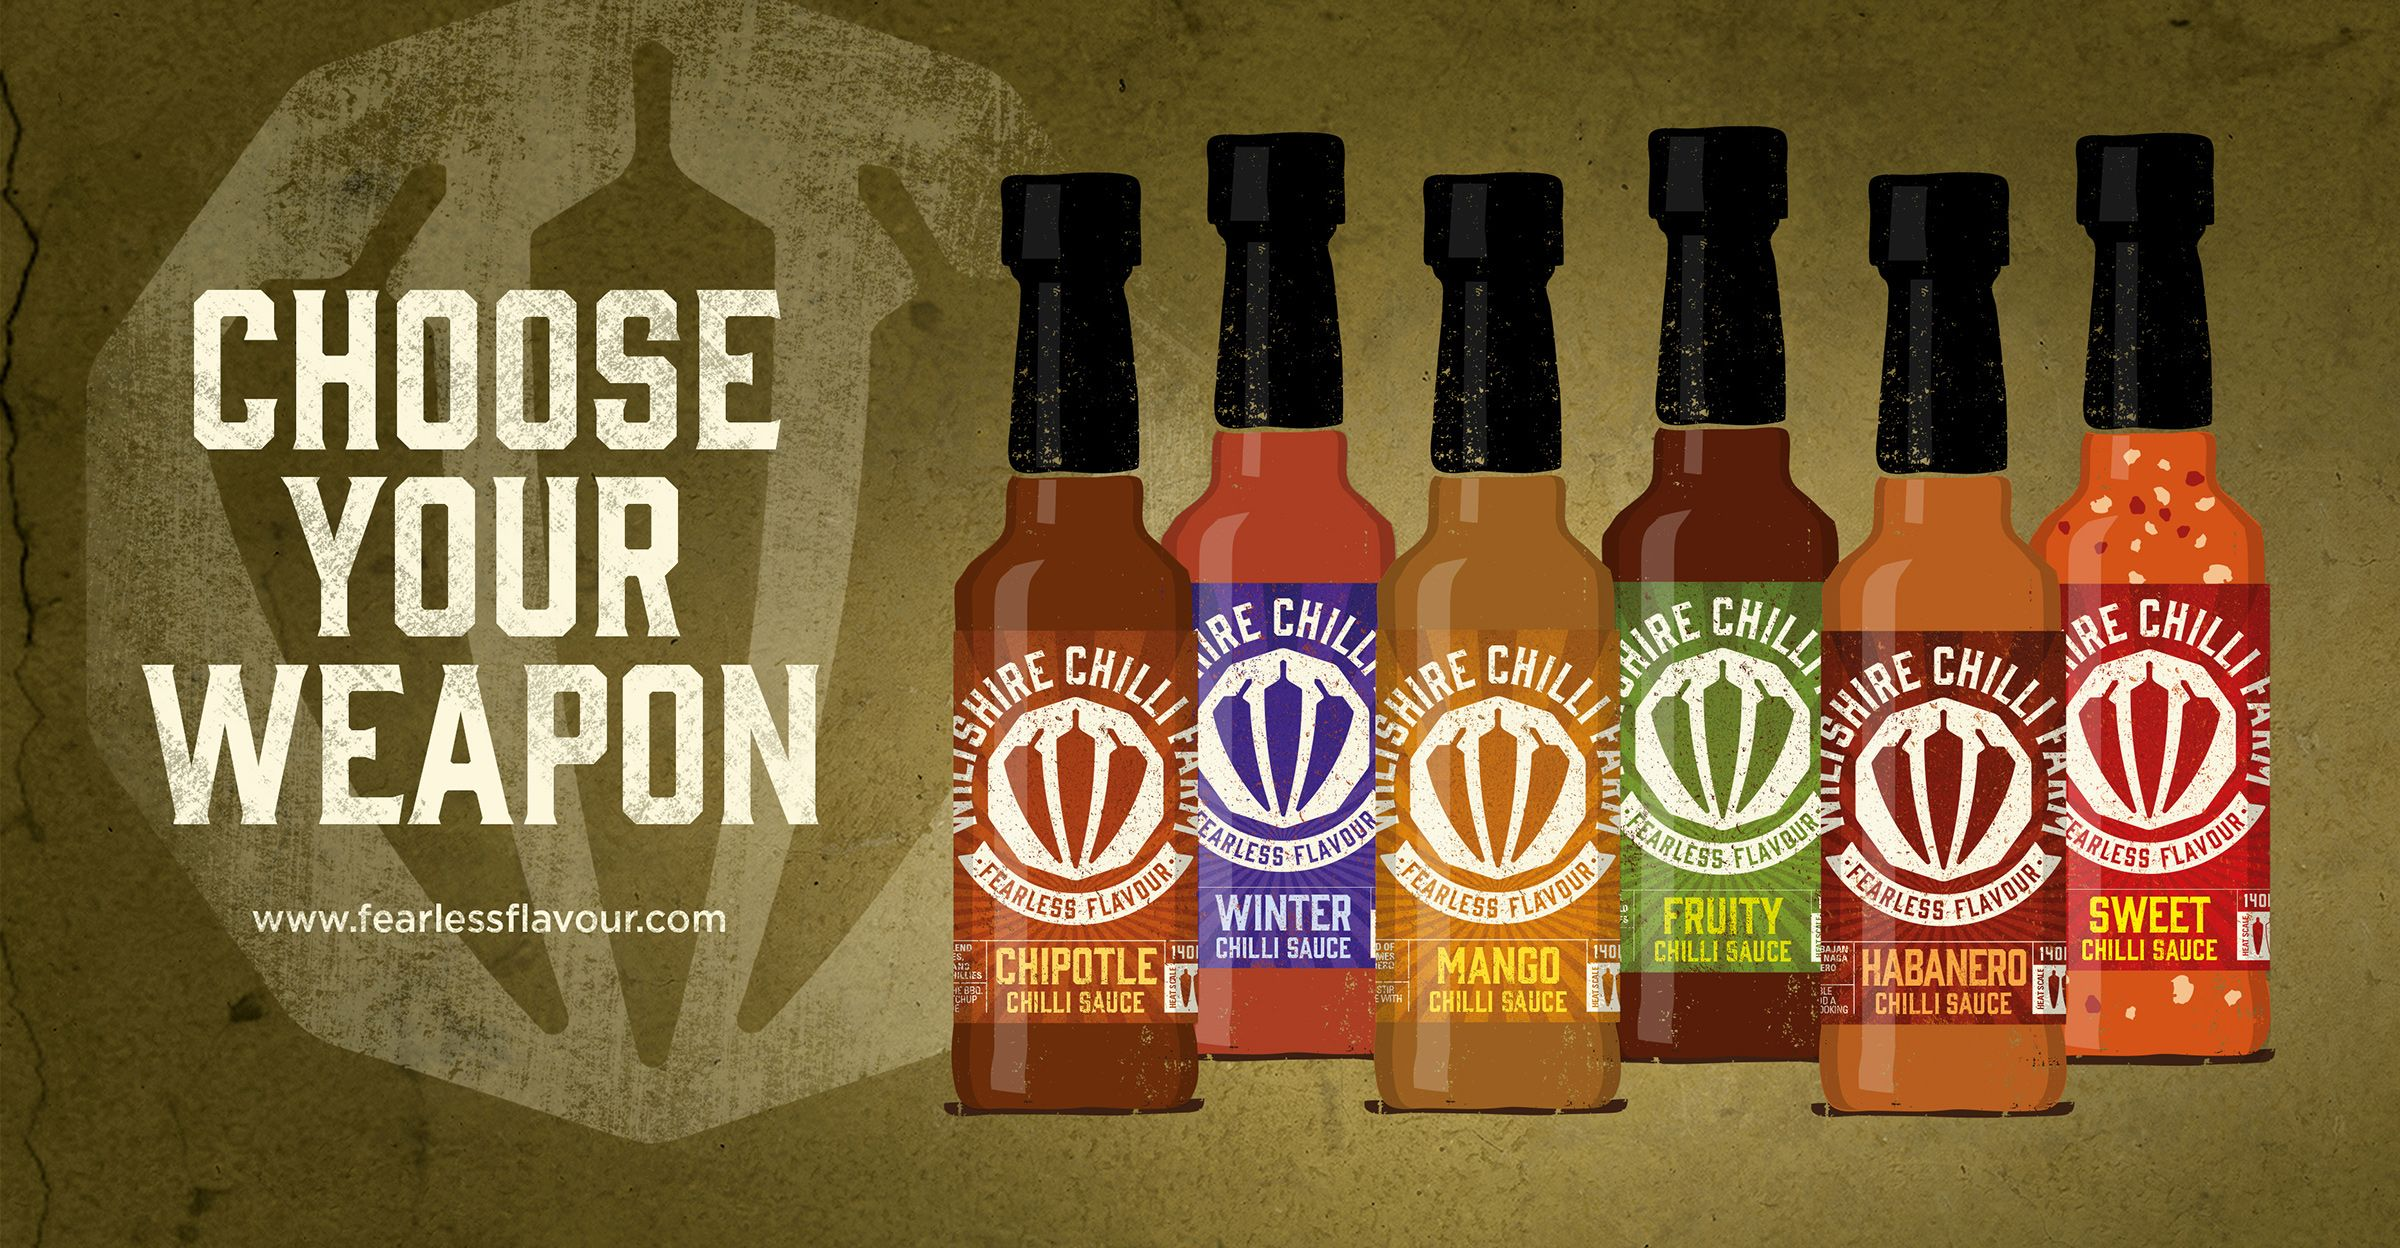 Wiltshire Chilli Farm — The Dieline - Branding & Packaging